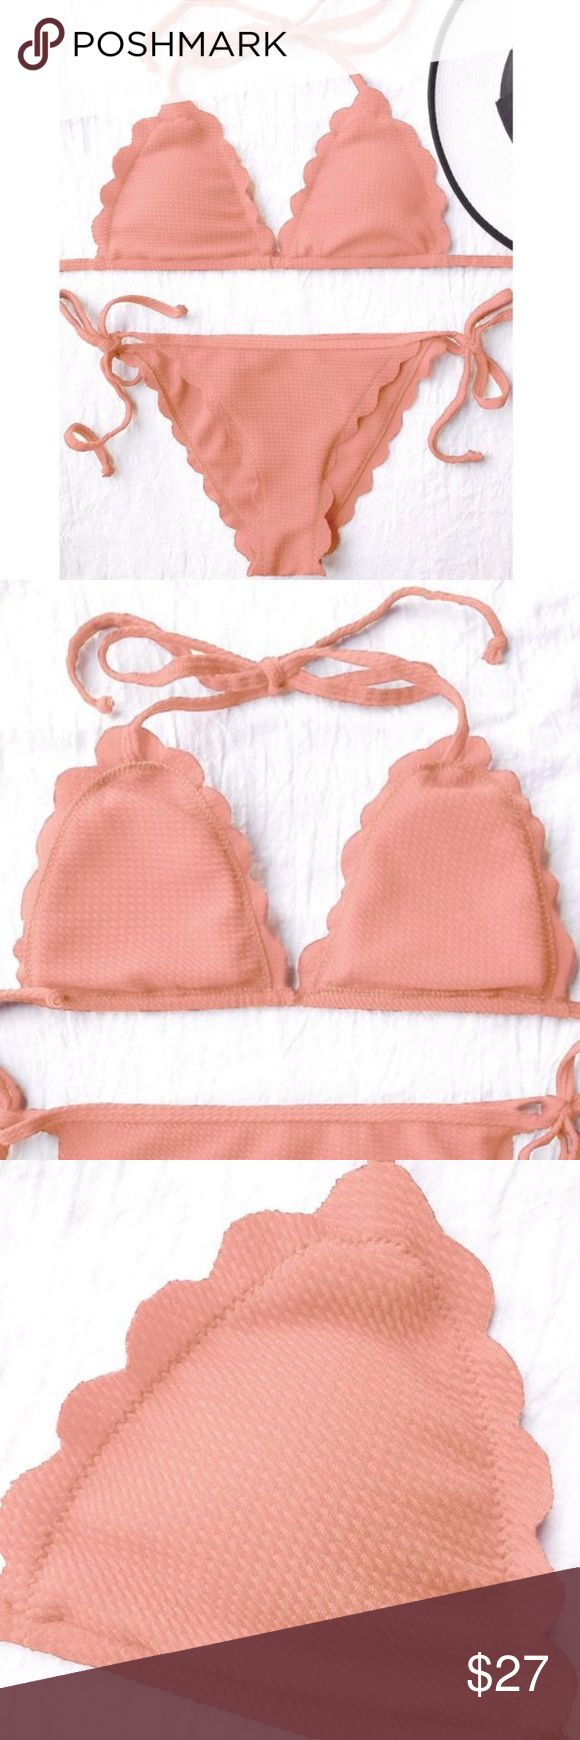 Coral triangle string Bikini Coral string bikini. It is a  bright color between a pink and orange. The top is padded and the bottoms are Cheeky. Please see pictures for sizing information. ✅ ships next business day ❌ trades Swim Bikinis